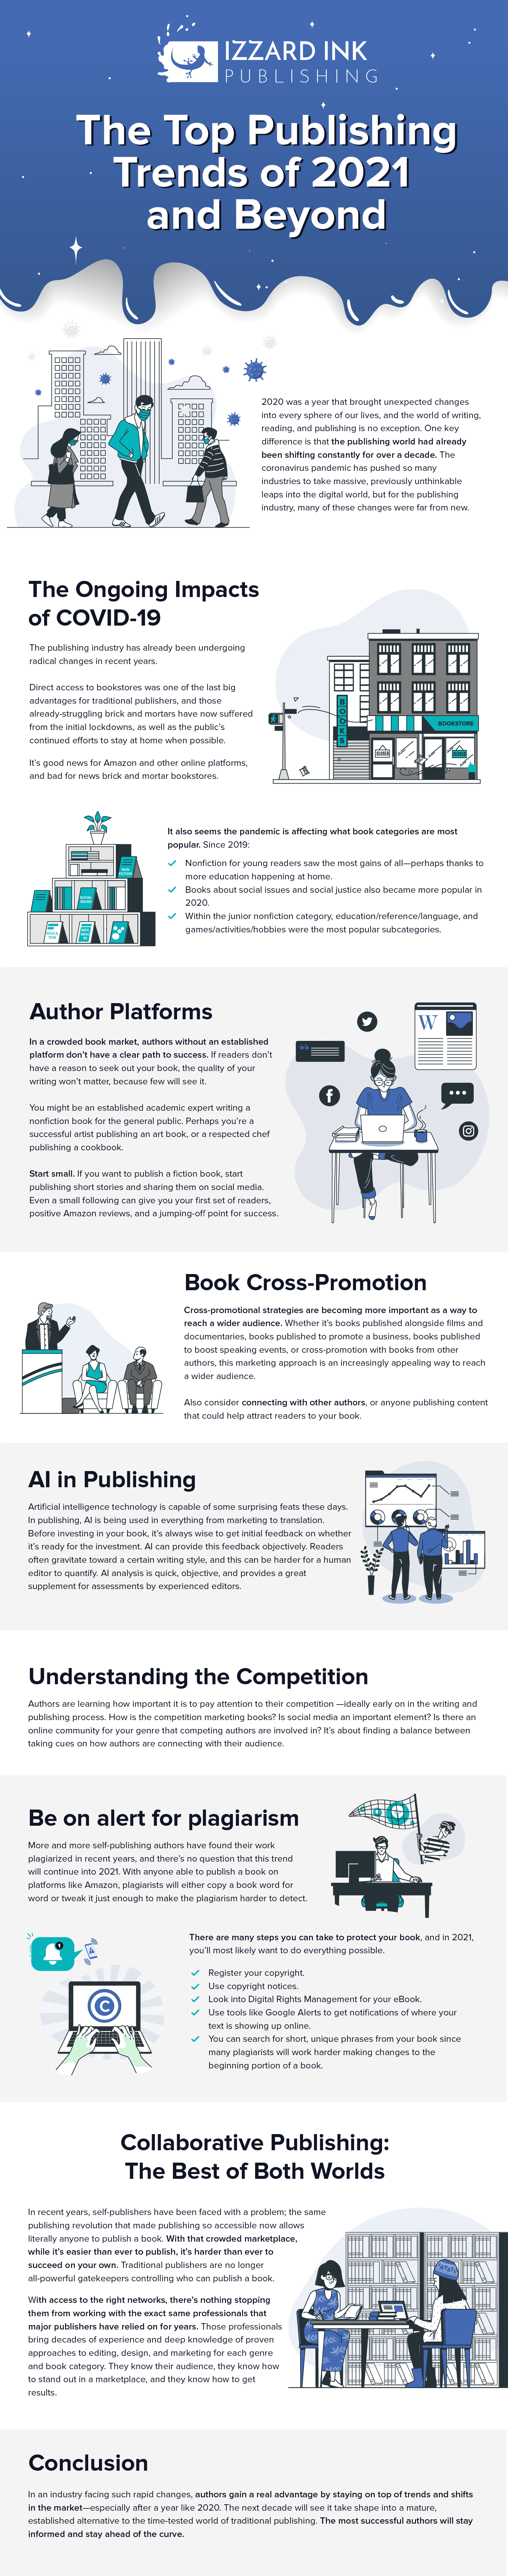 The Top Publishing Trends of 2021 and Beyond Infographic